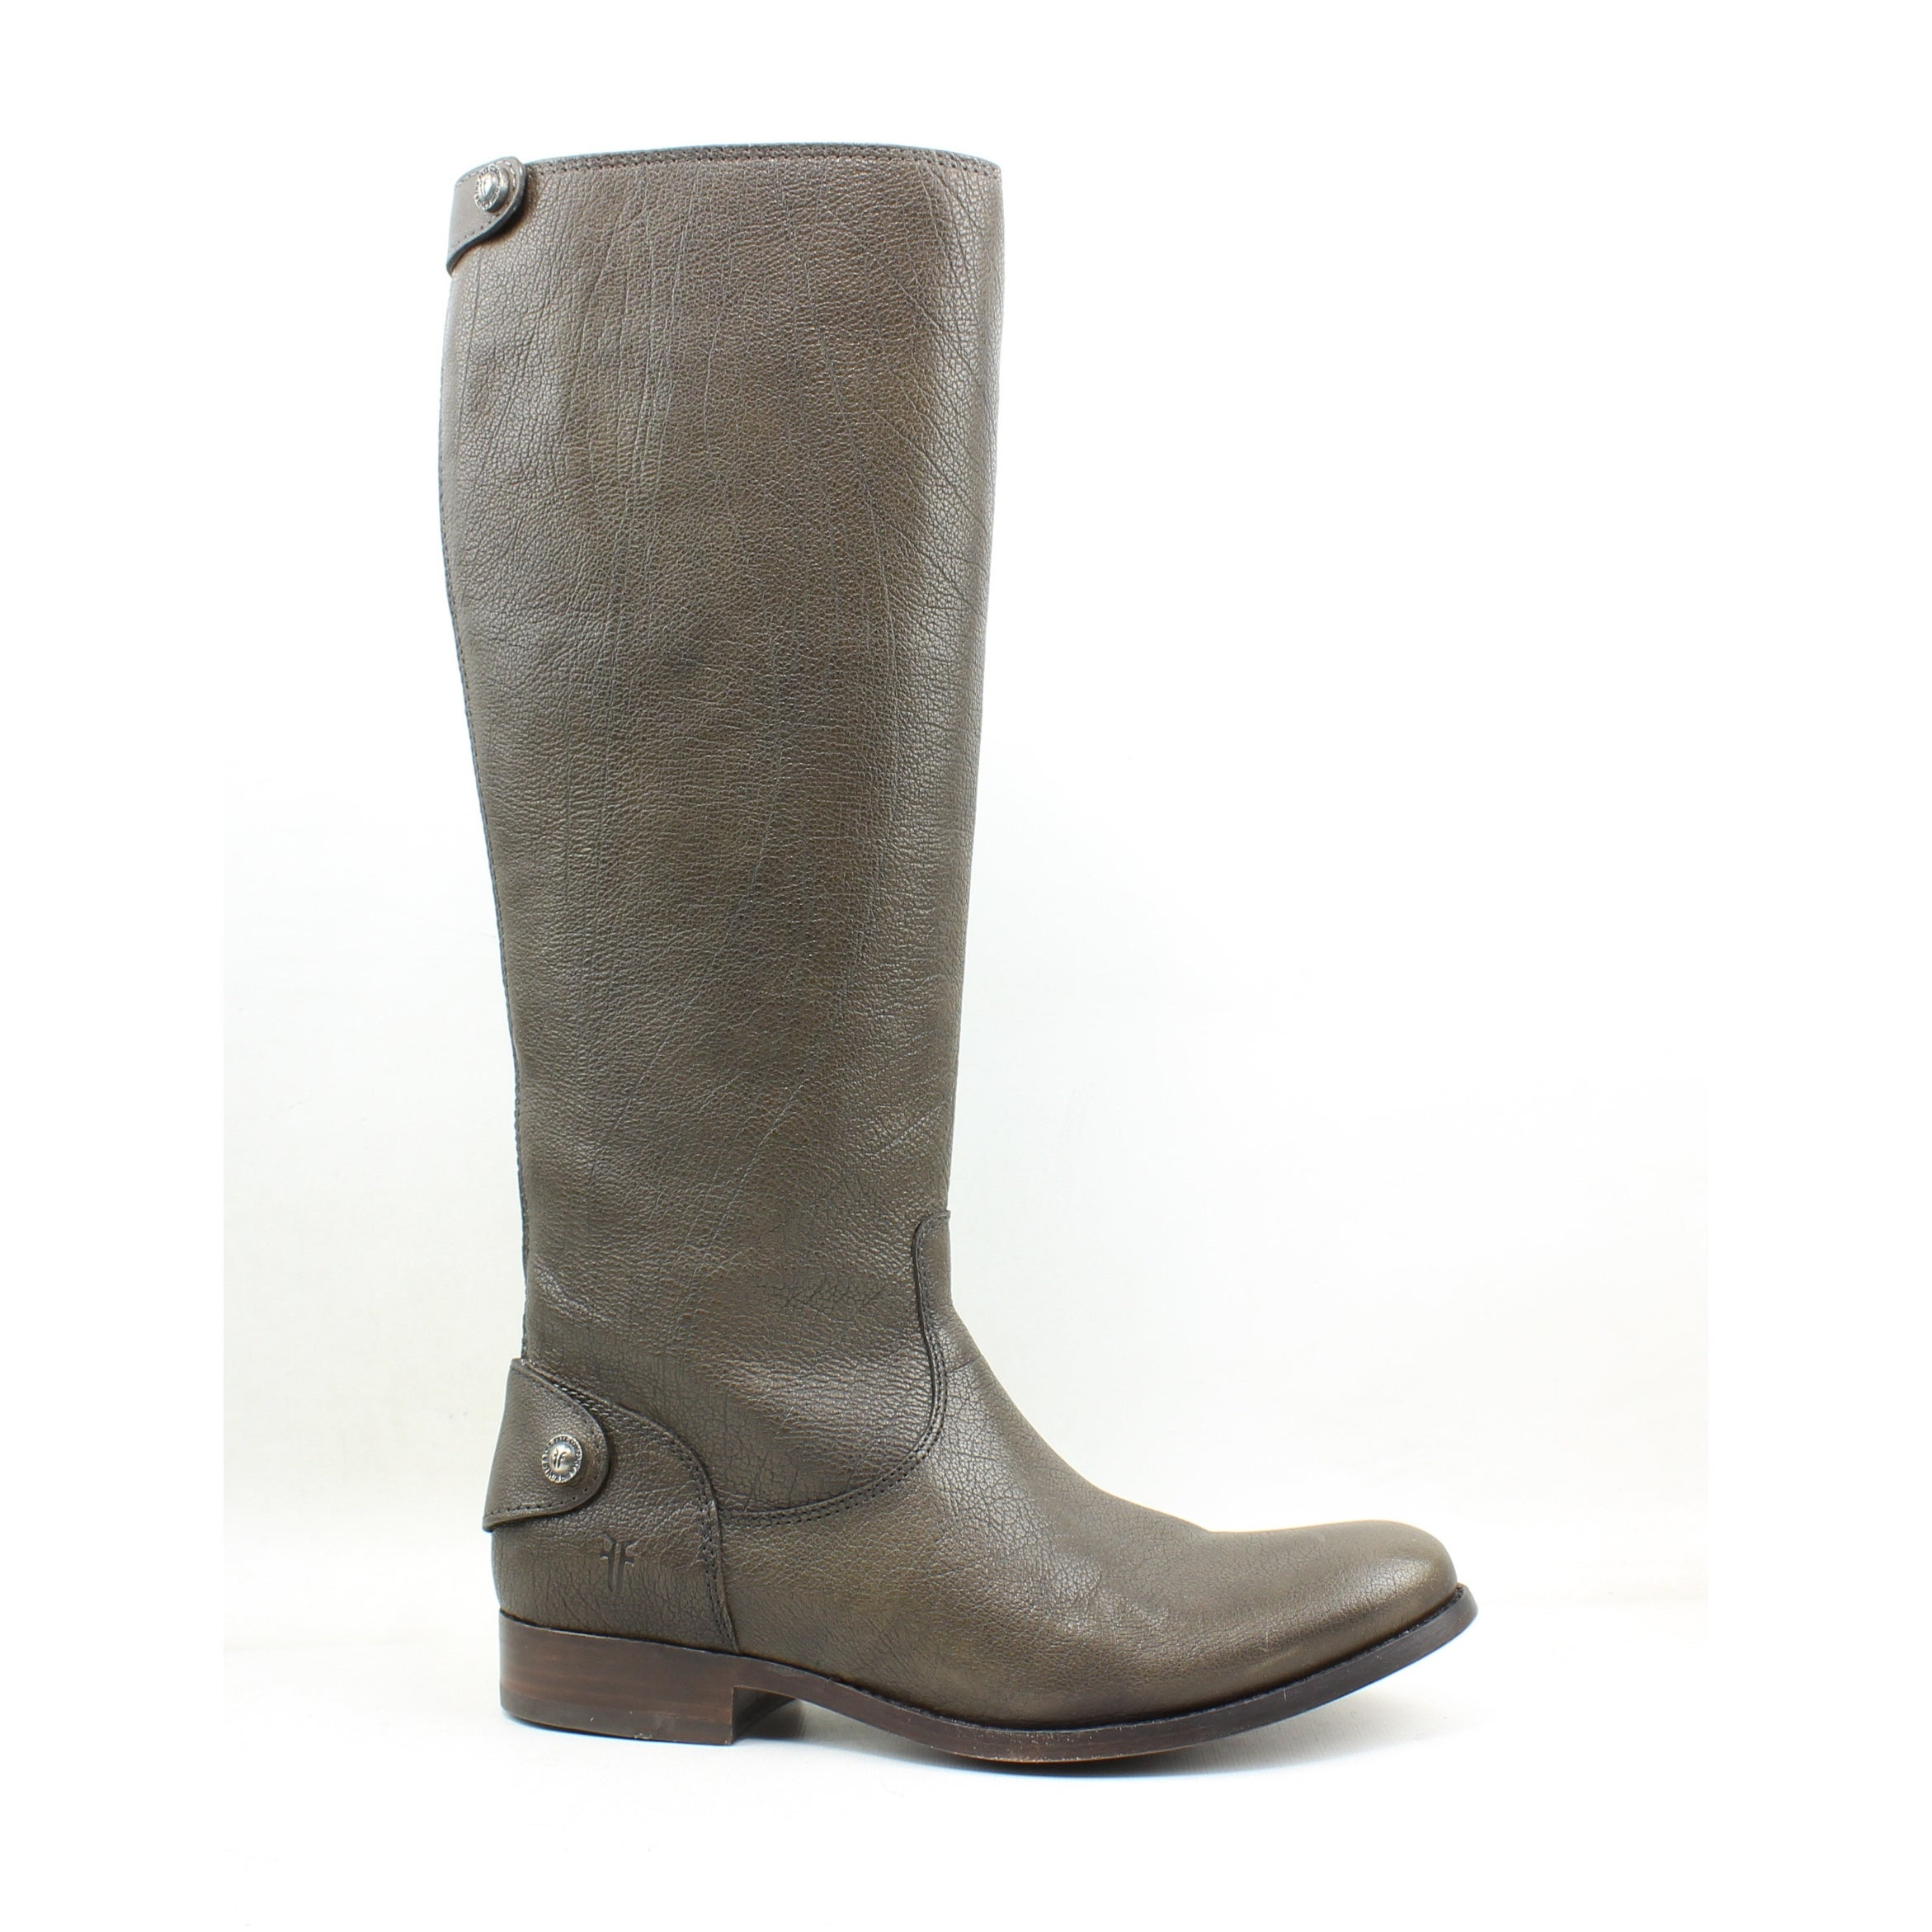 0e3ab988dc0 Buy Frye Women s Boots Online at Overstock